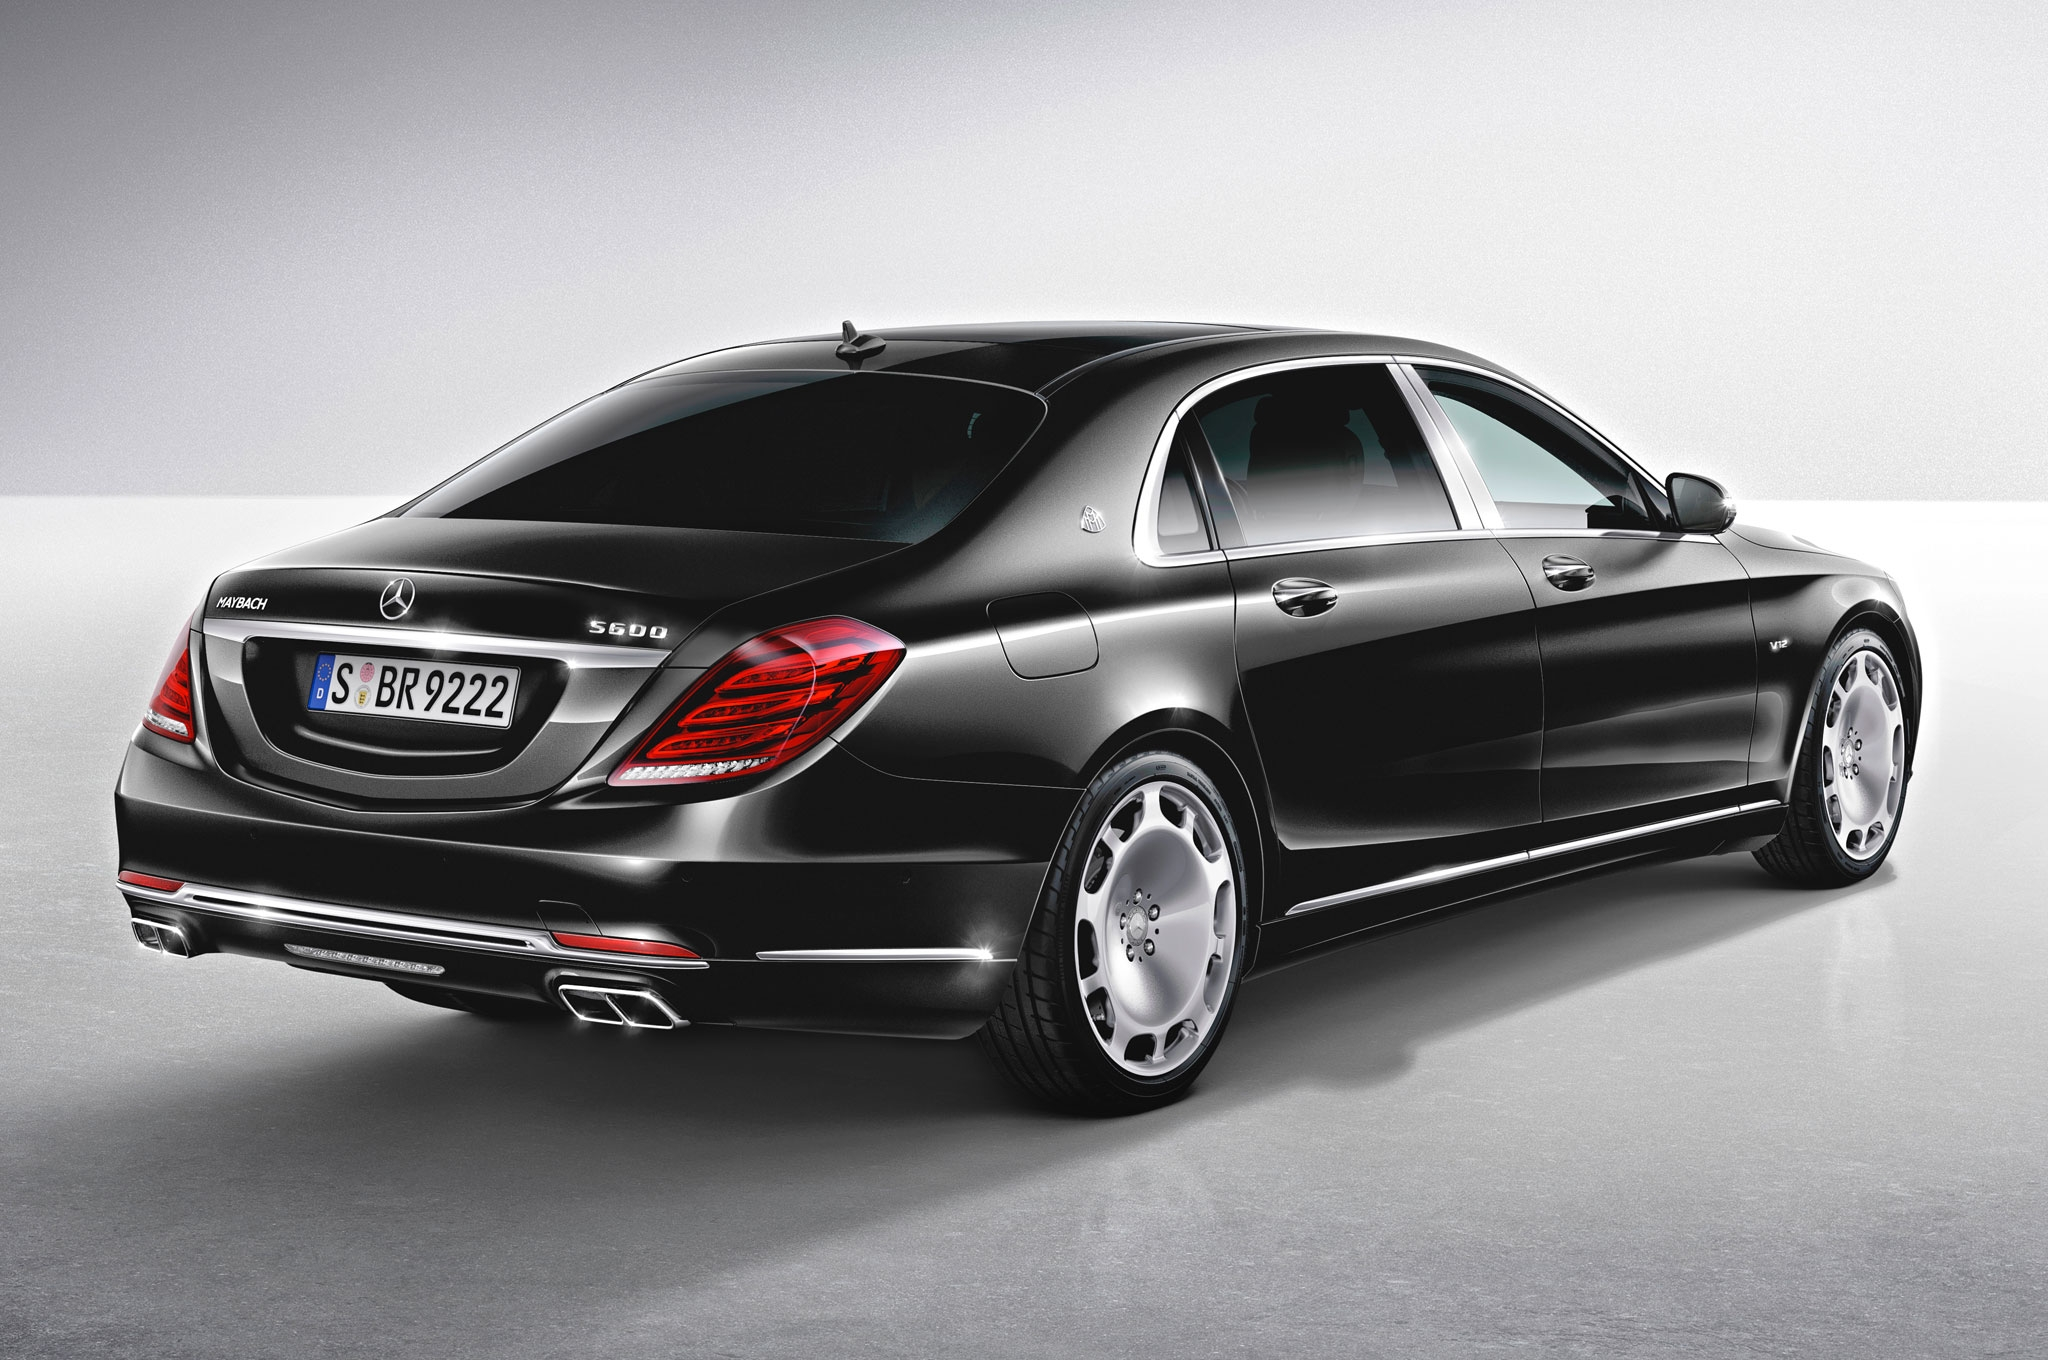 http://techdrive.co/wp-content/uploads/2015/01/2016-mercedes-maybach-s600-rear-three-quarter-view.jpg